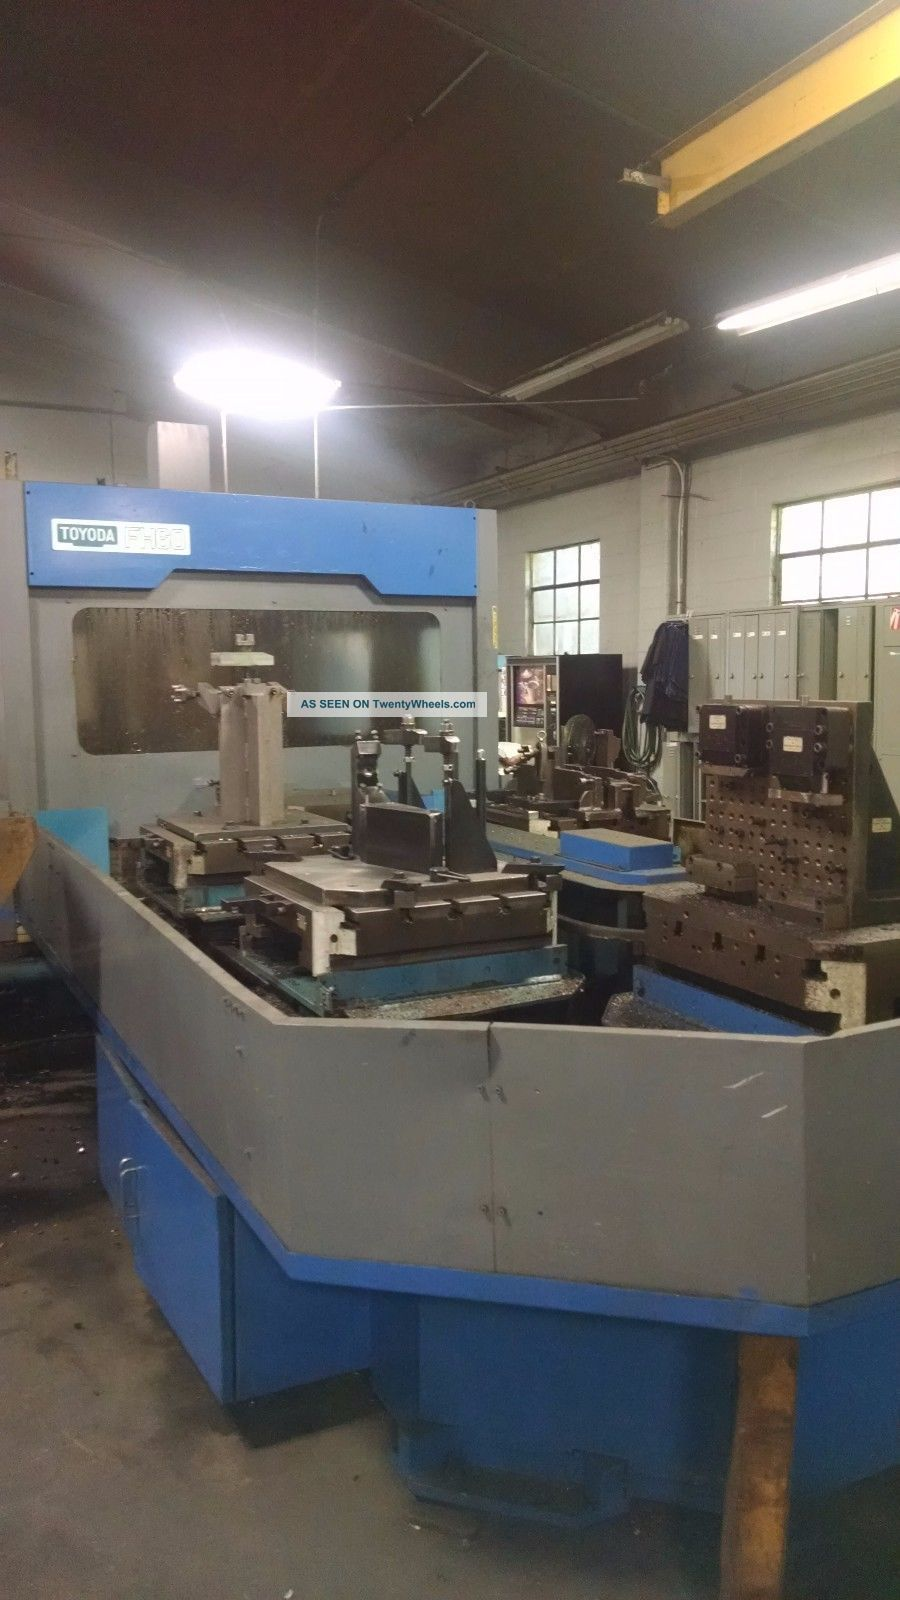 Toyoda Fh - 60 Cnc Horizontal Machining Center W 9 Station Pallet Pool Ct50 Milling Machines photo